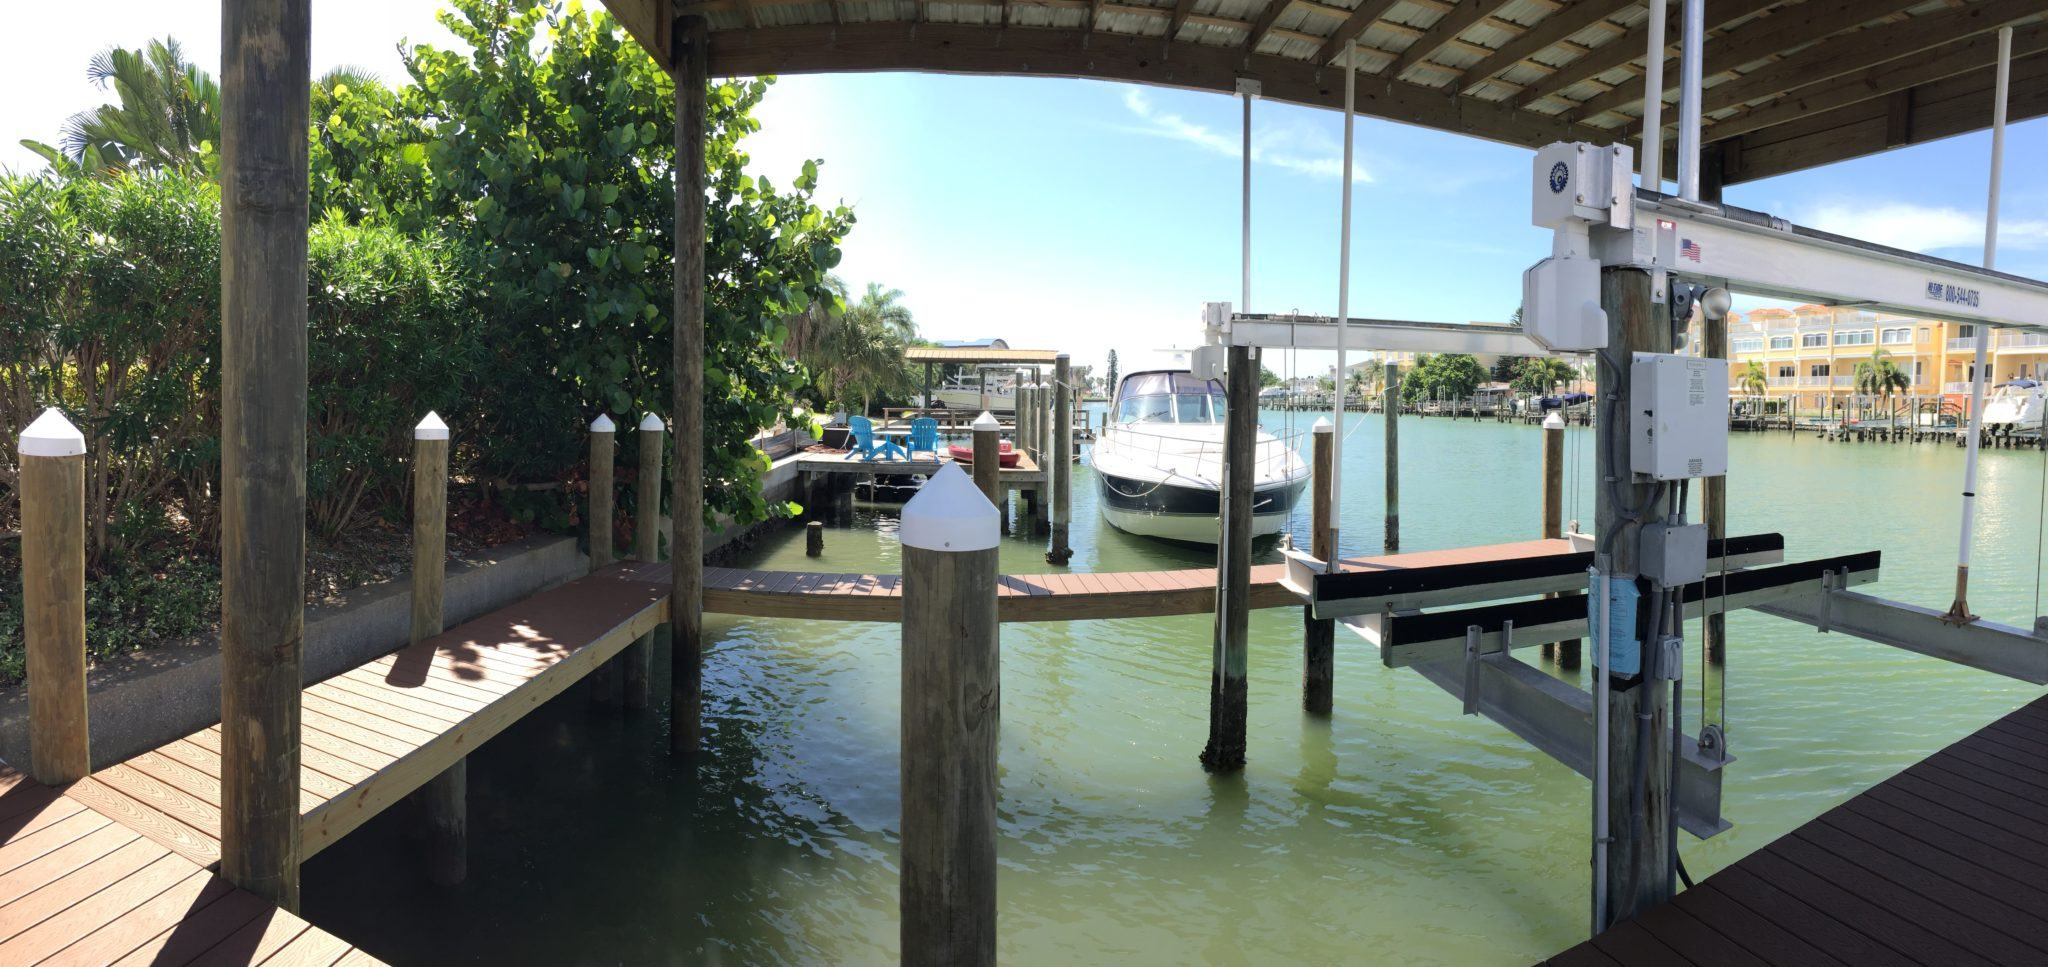 Stationary dock with composite Trex decking with catwalk around boat lift on the water